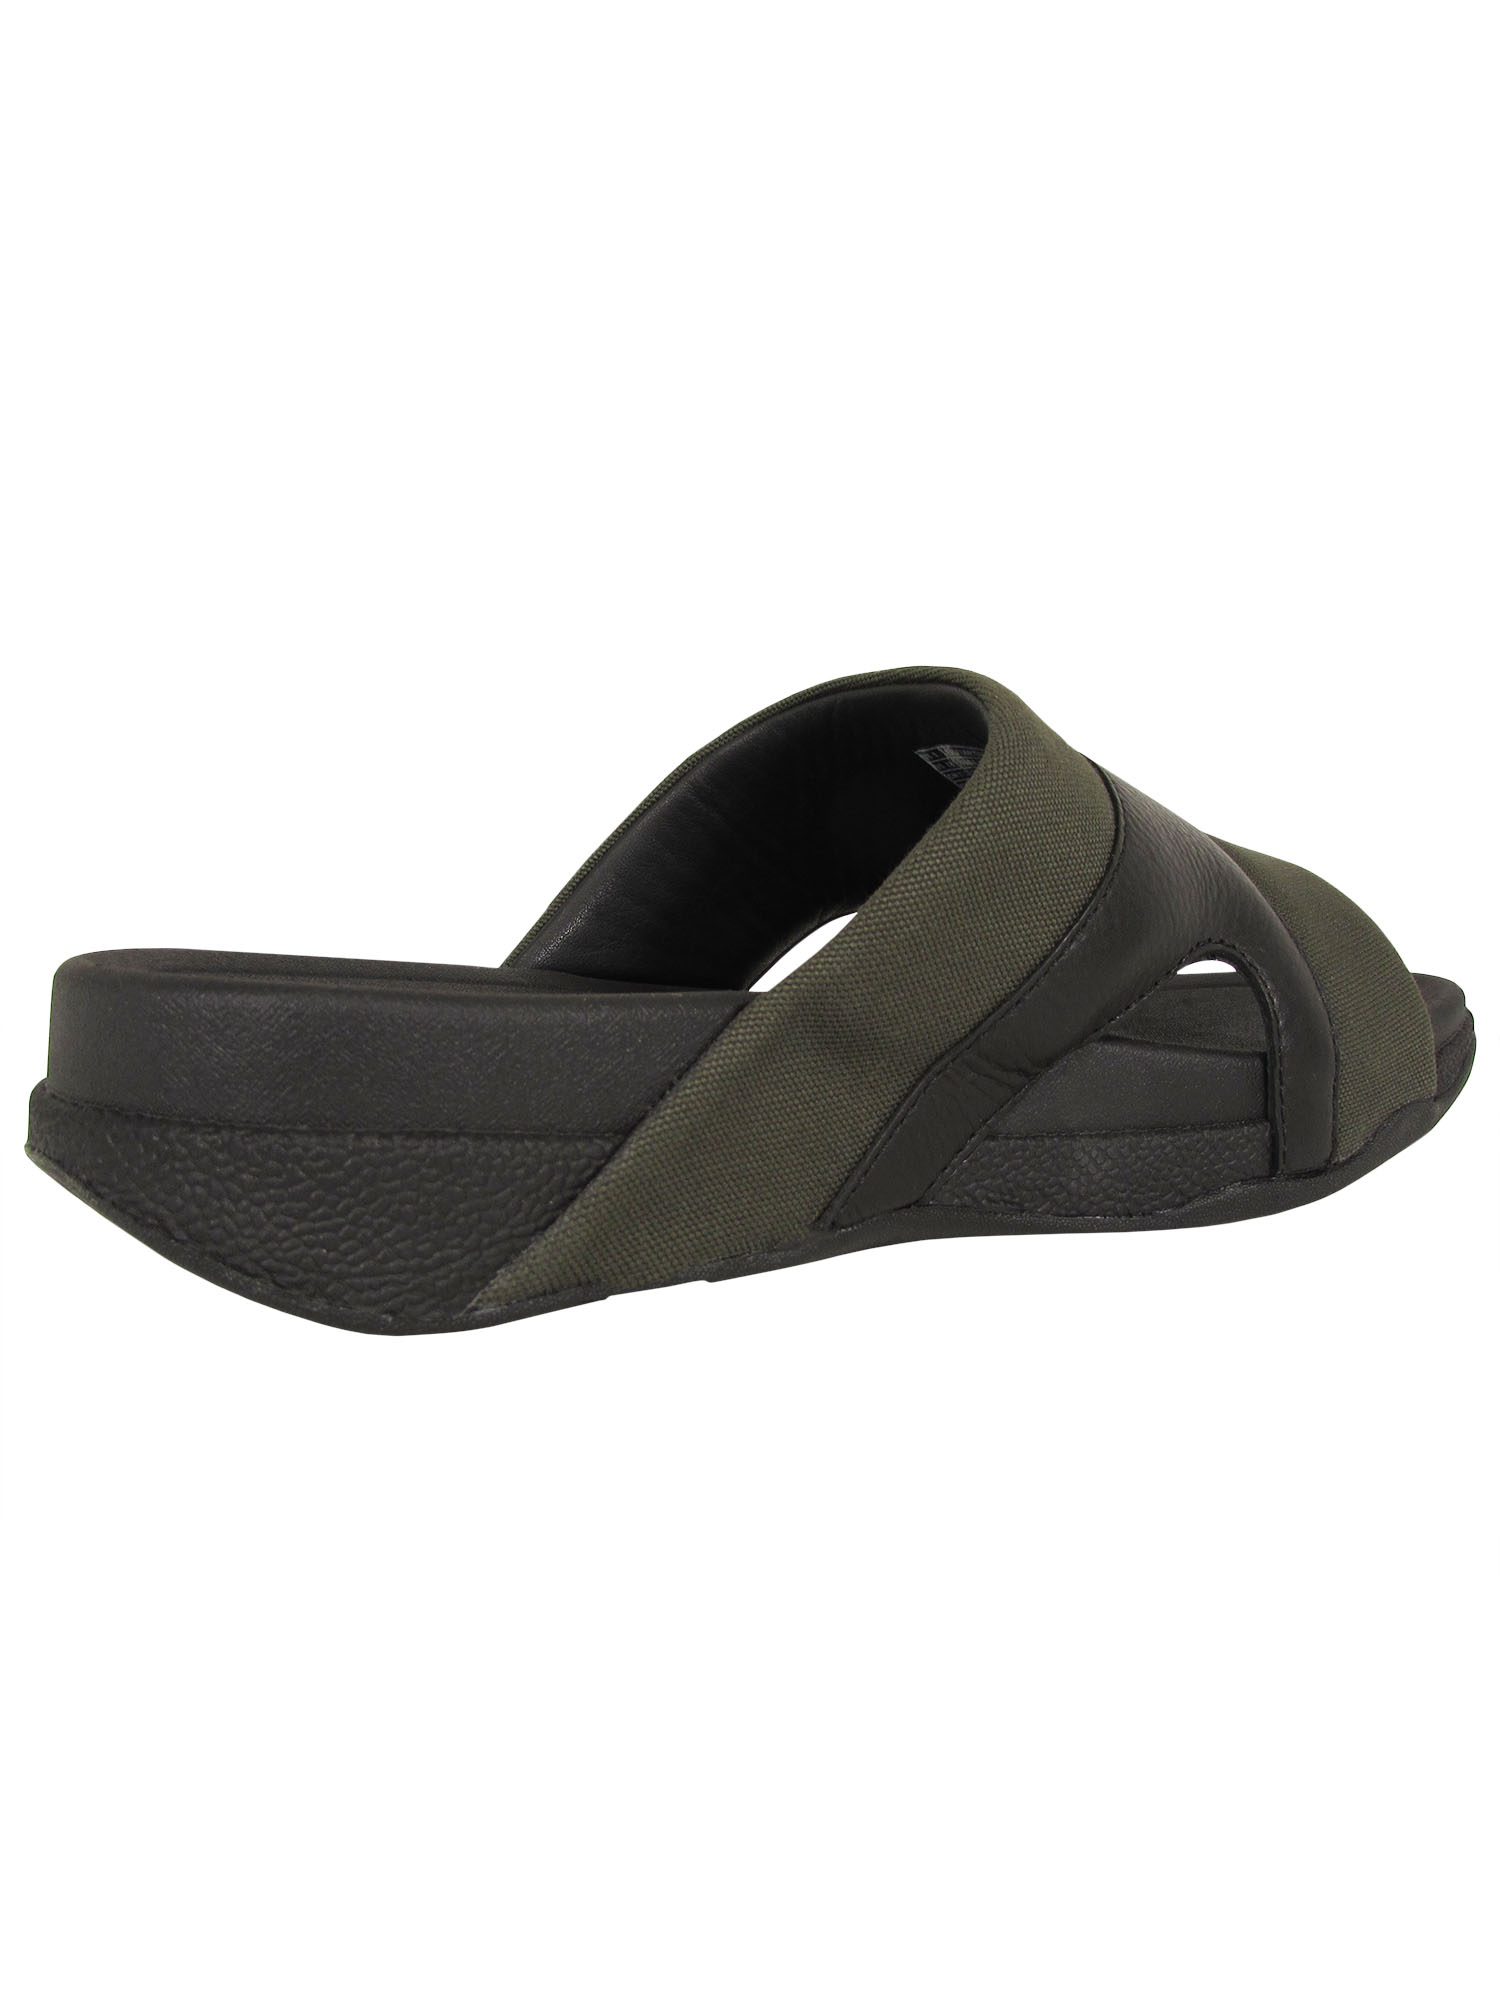 thumbnail 4 - Fitflop-Mens-Freeway-Leather-Canvas-Pool-Slide